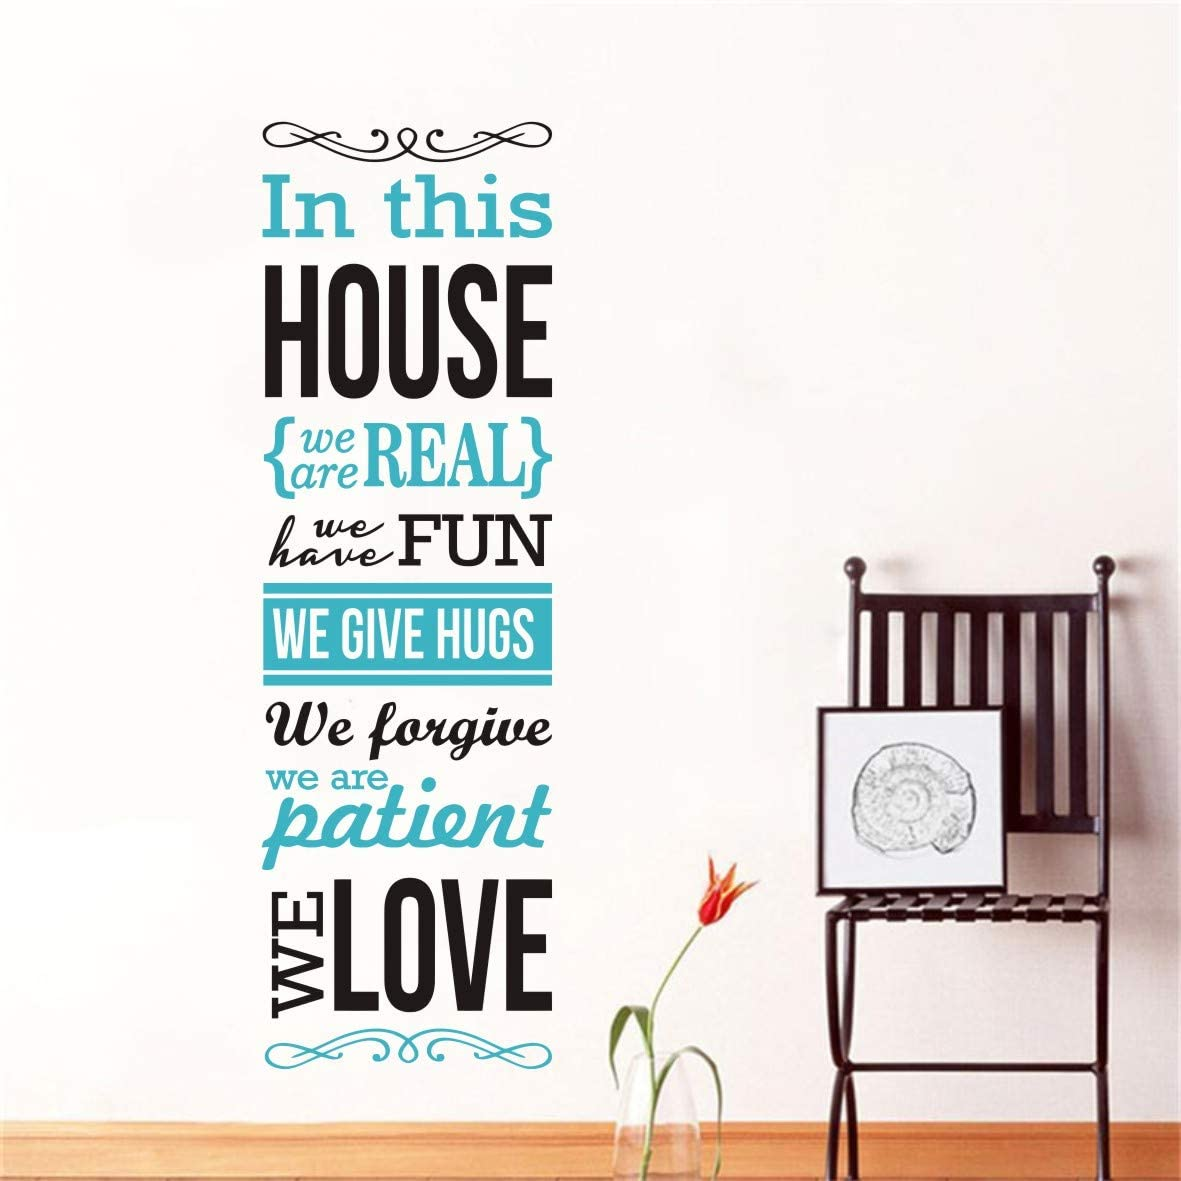 2 Color Mix Family Rules Quotes Wall Decal Saying Words House Rule Love Home Decor Wall Murals Art Living Room Decoration Stickers KW-305